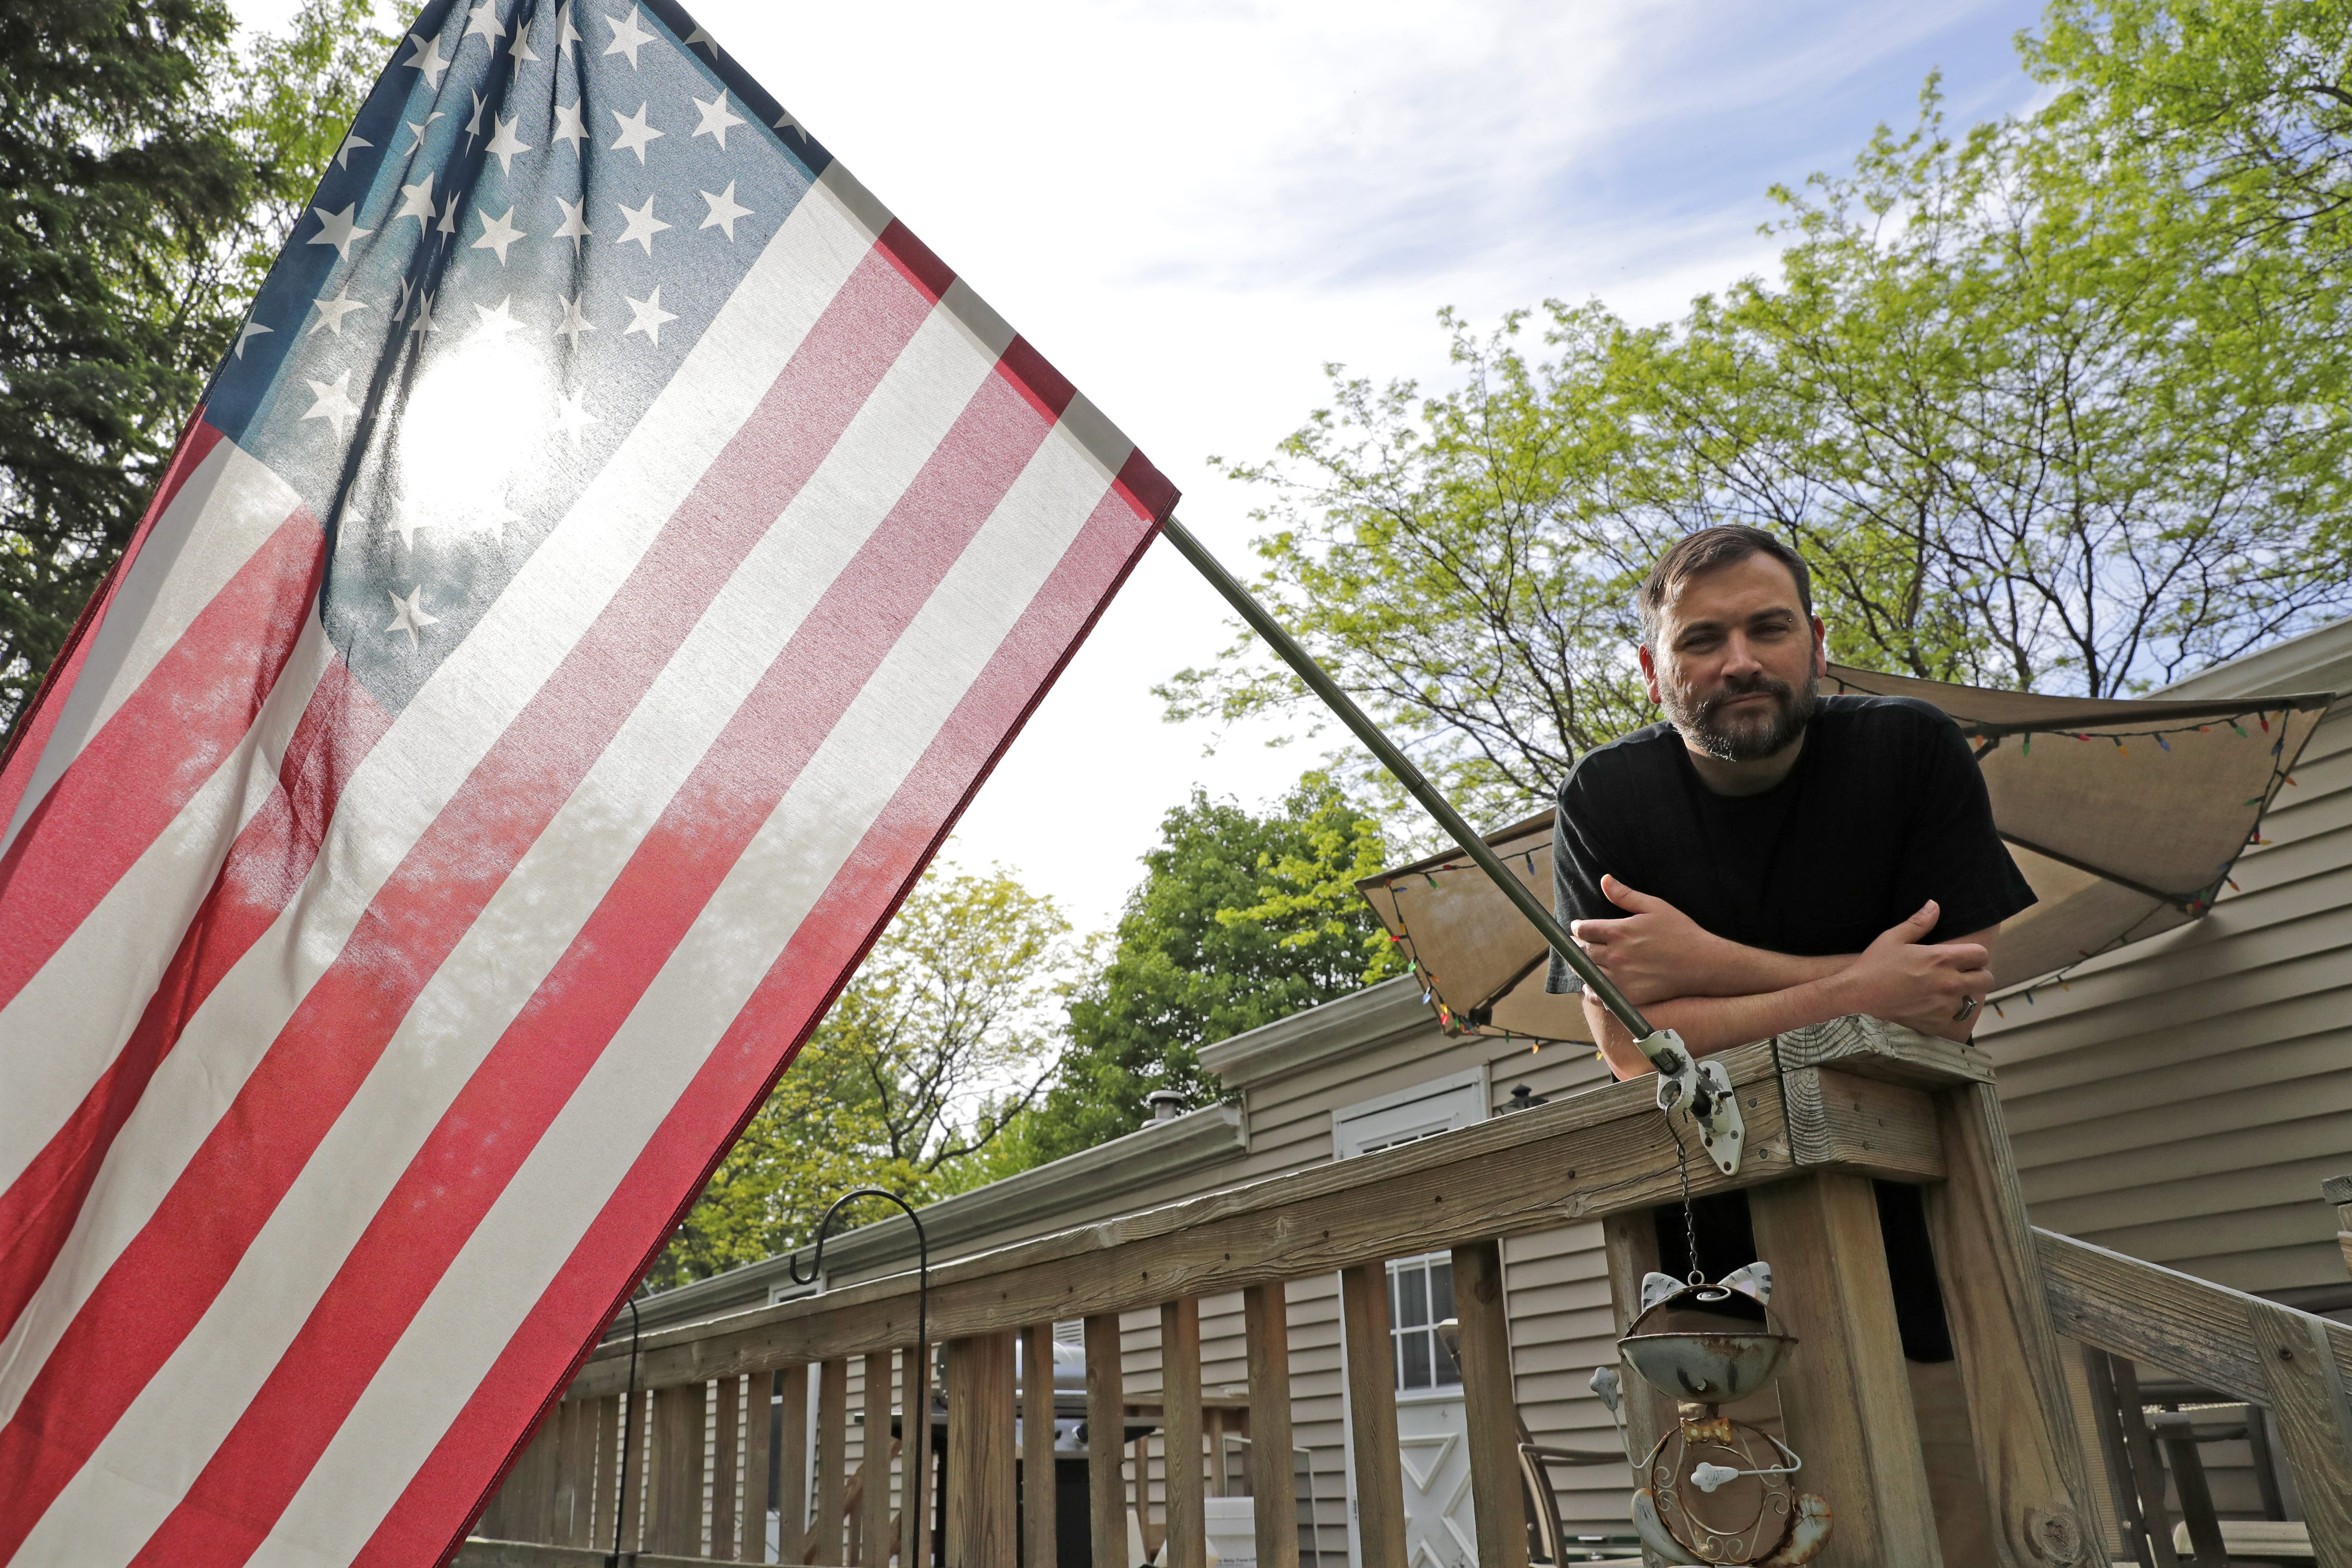 Chuck Andrews lives with a roommate in a rented trailer home in Menasha. The 35-year-old has been looking for more than two years for an affordable apartment in hopes of spending more time with his 2-year-old daughter, but credit problems and a modest income have made the search difficult.